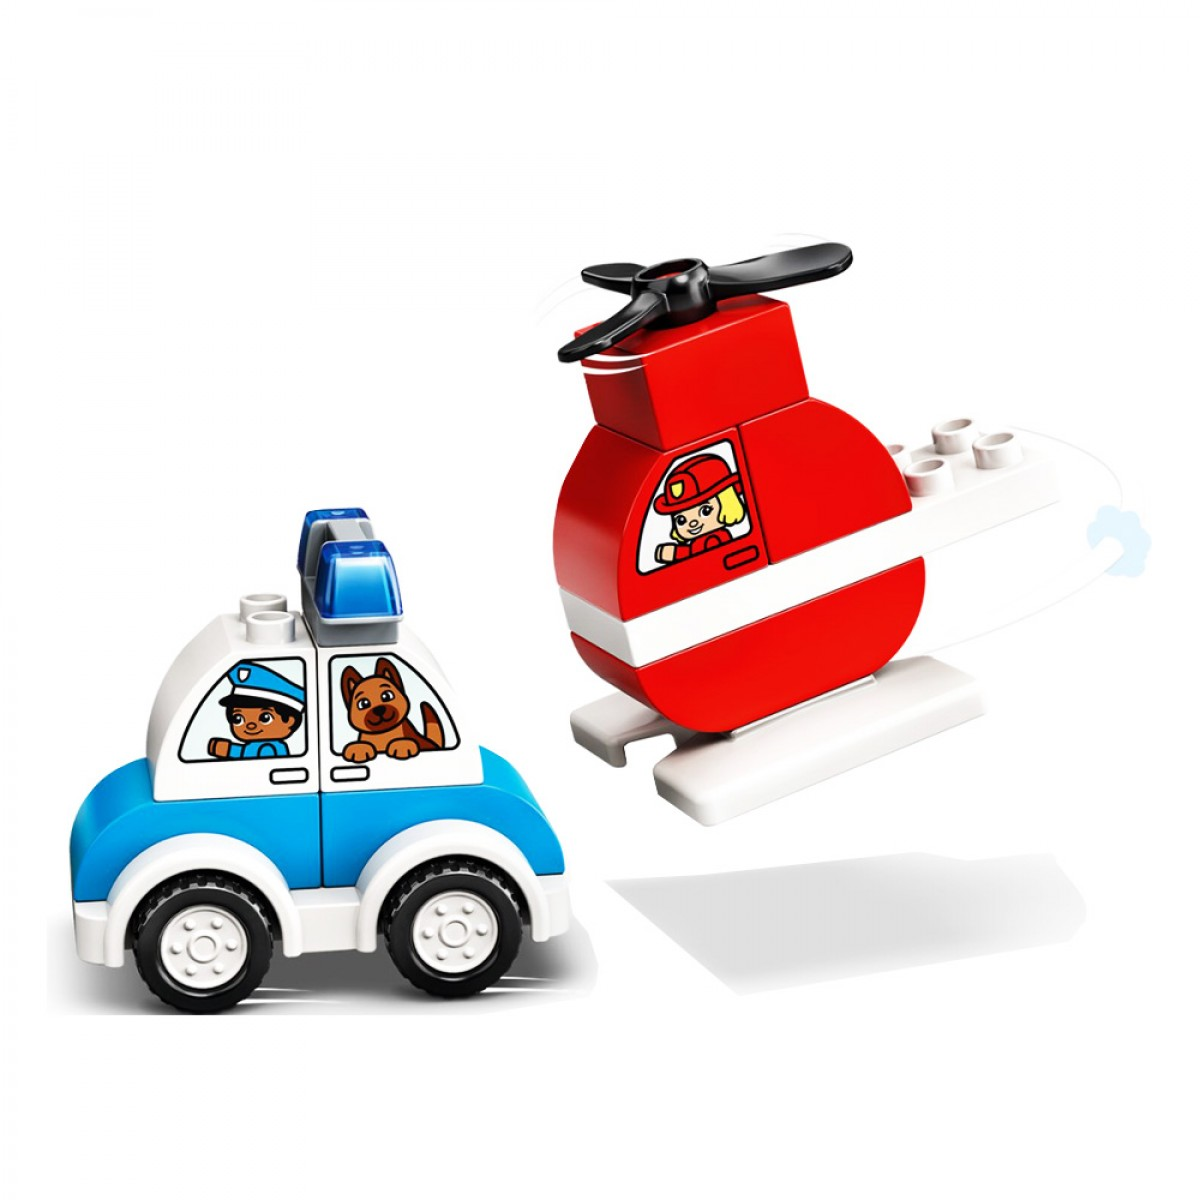 LEGO FIRE HELICOPTER & POLICE CAR 10957